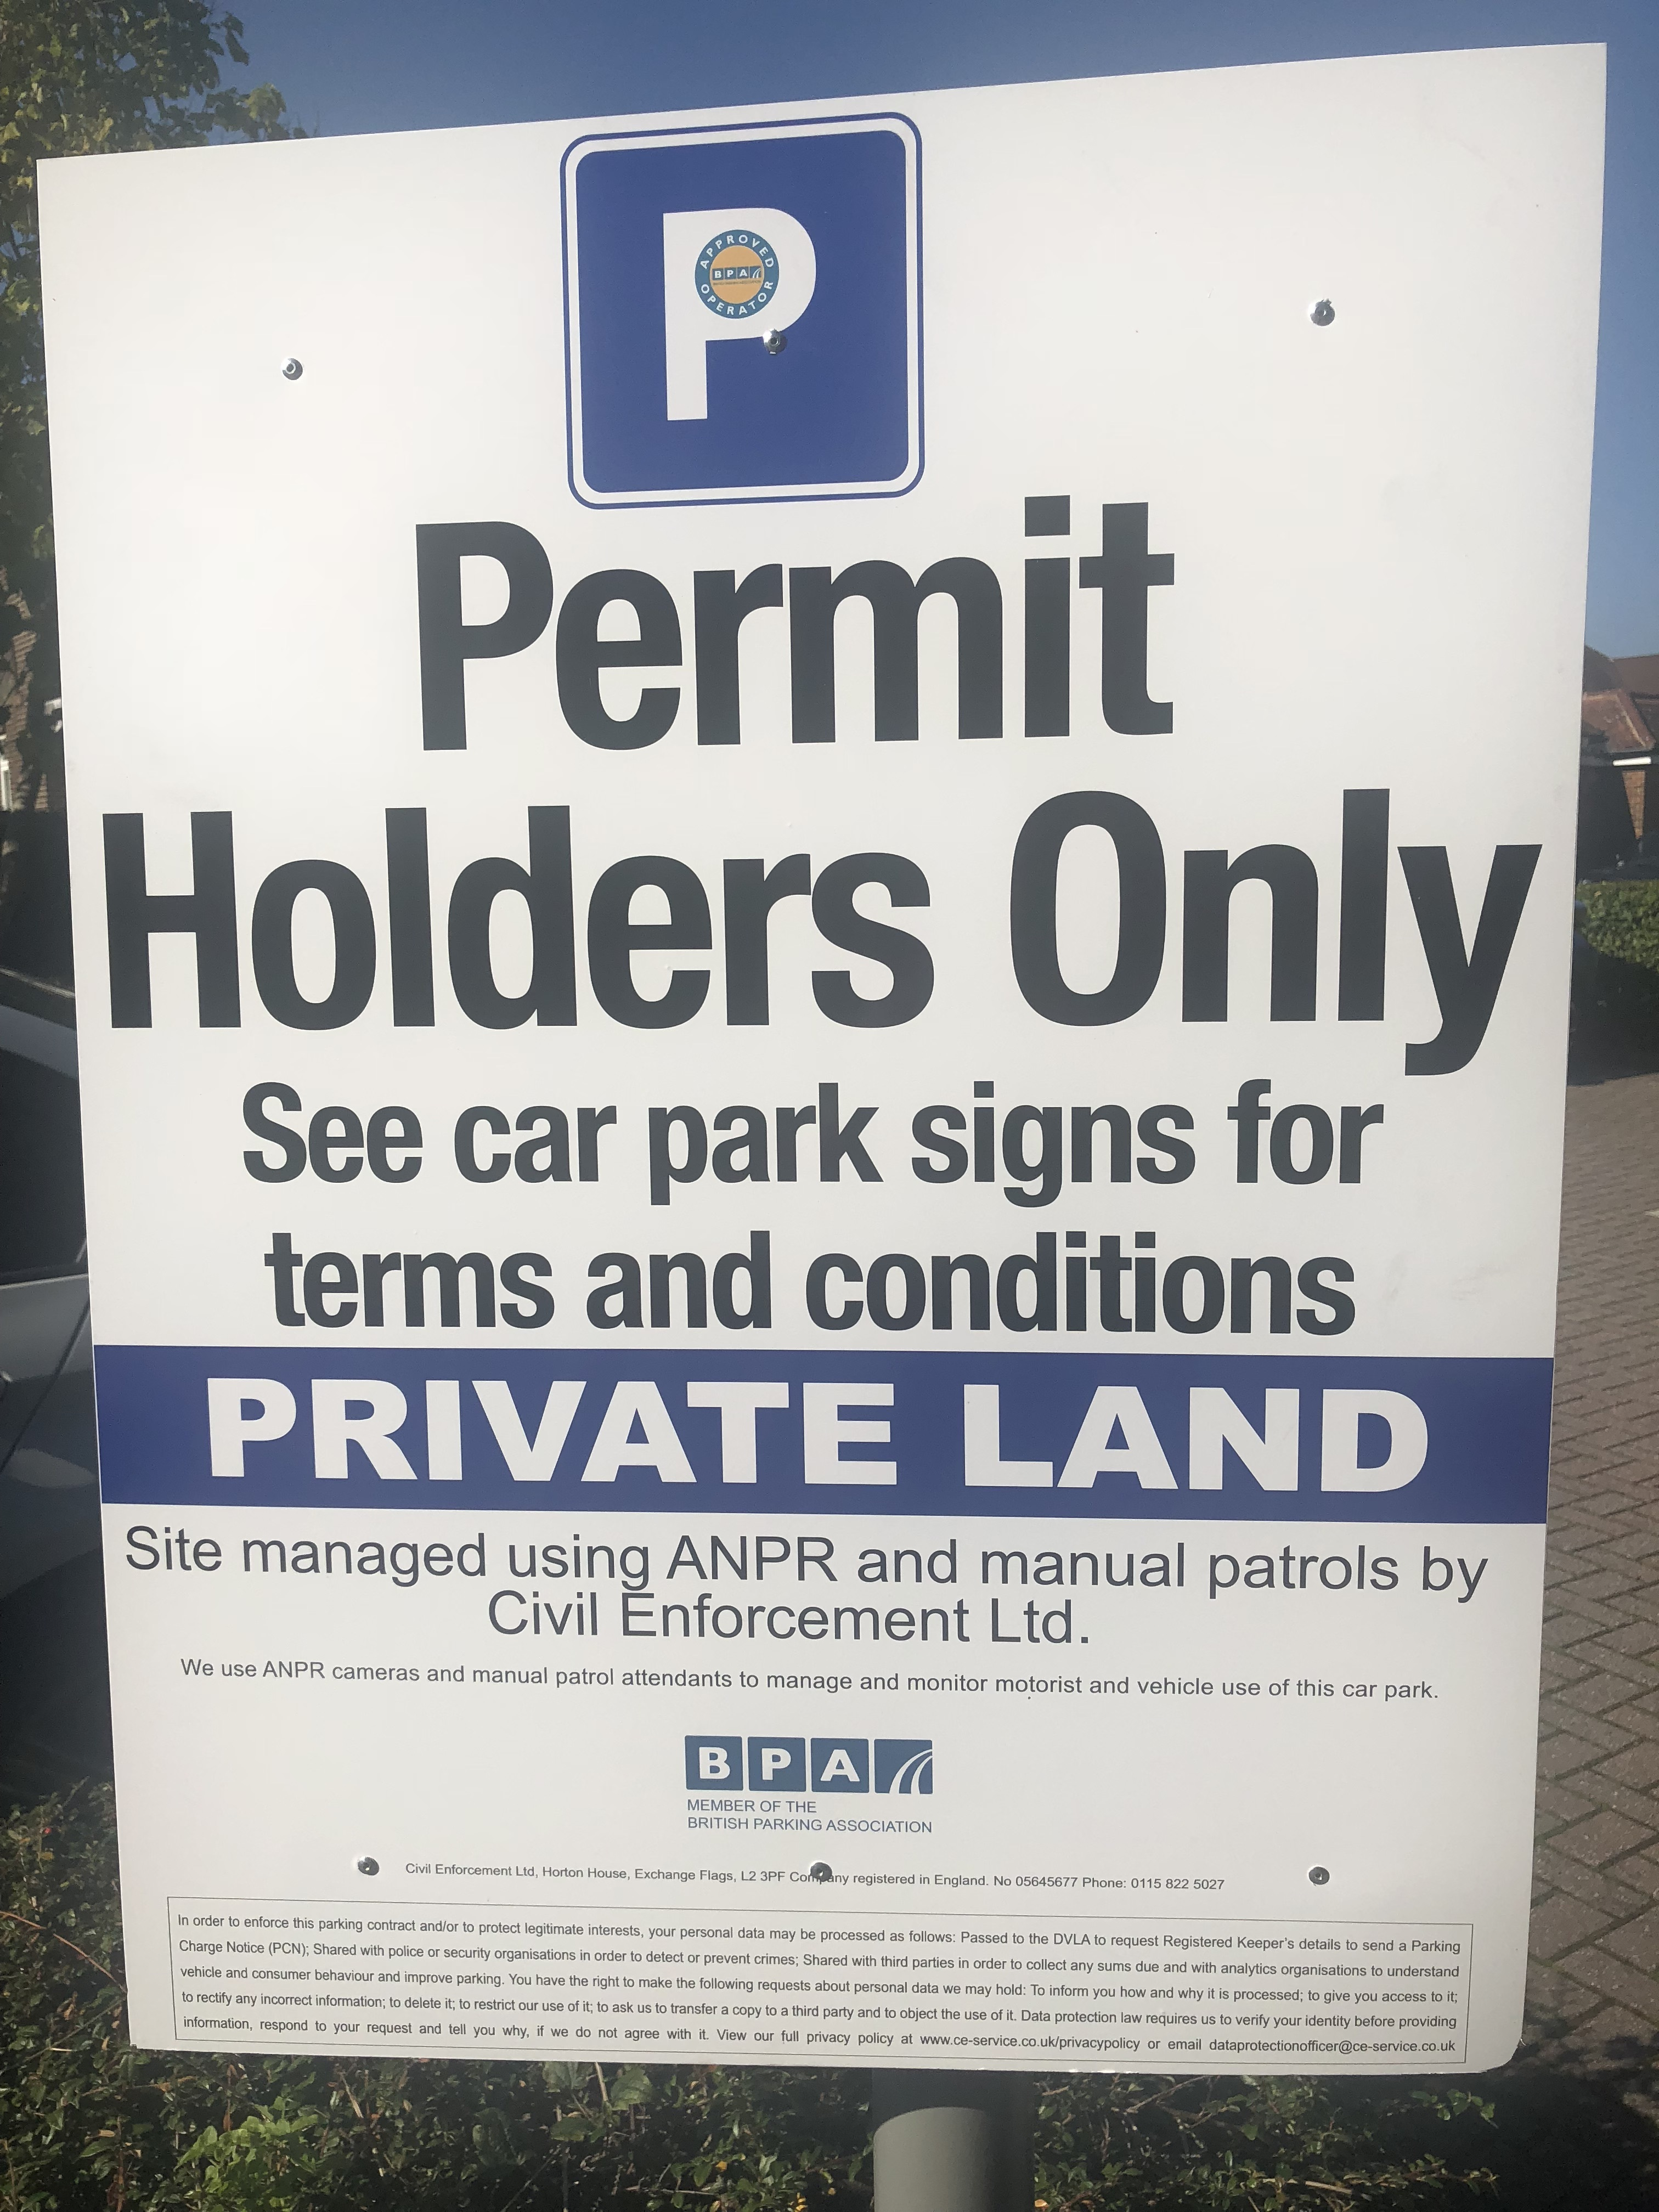 Image of the car parking sign in the practice car park. The sign says Permit holders only. See car park signs for terms and conditions.